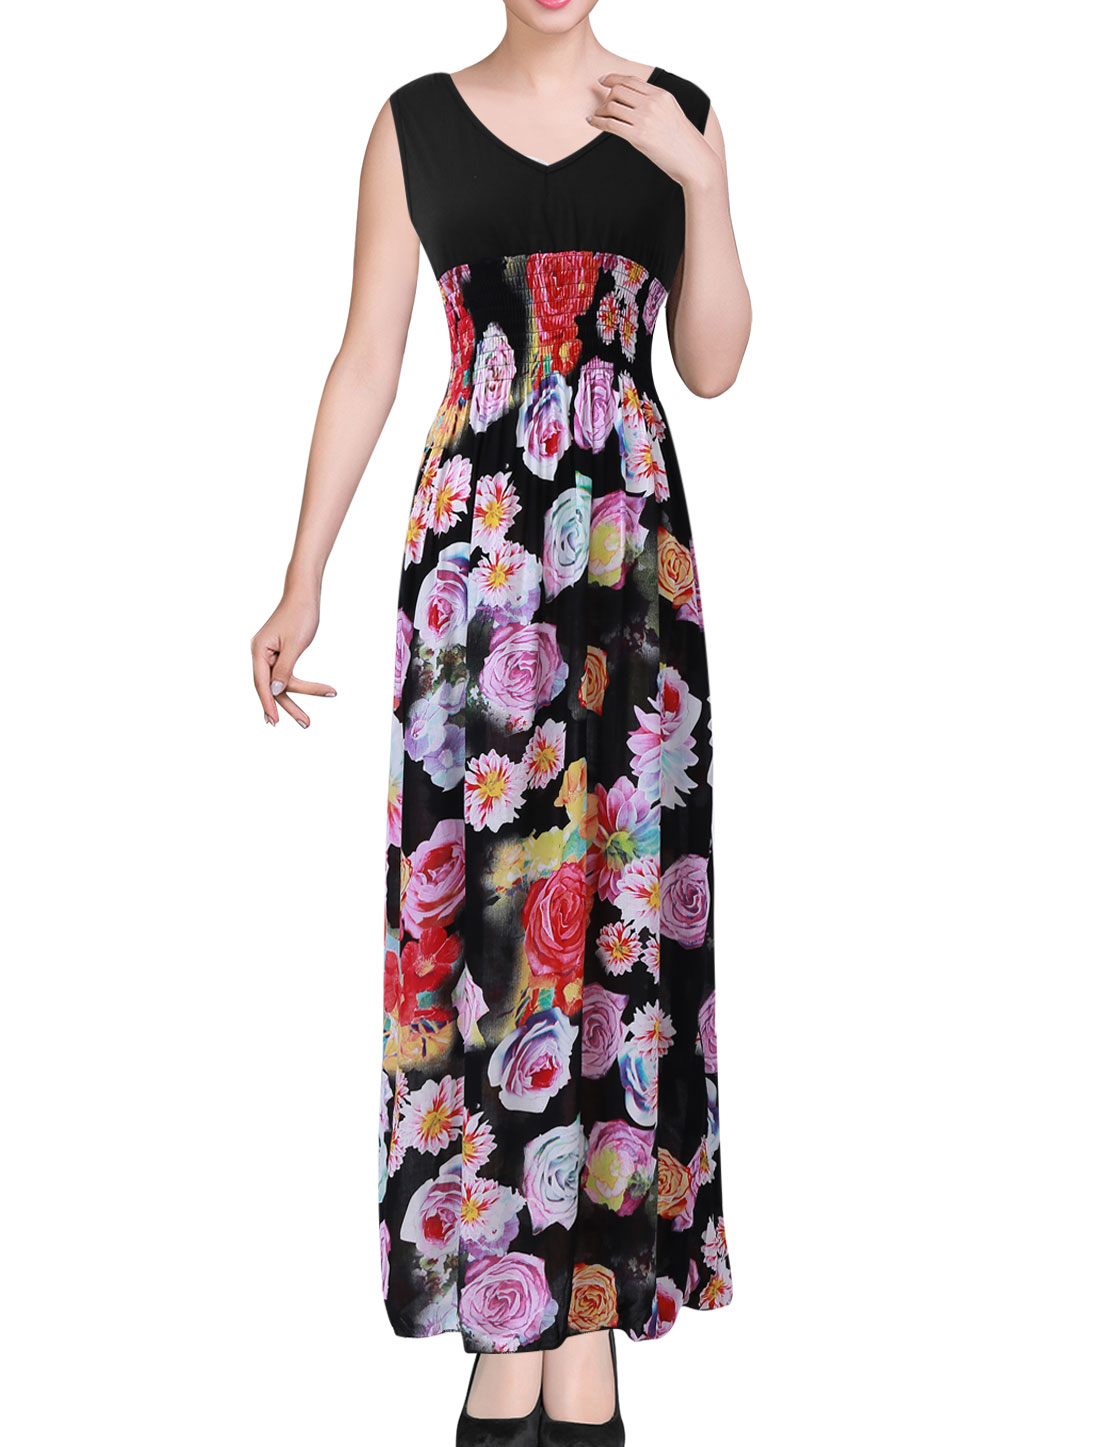 Ladies Floral Print Sleeveless Casual Maxi Dress Black Yellow S